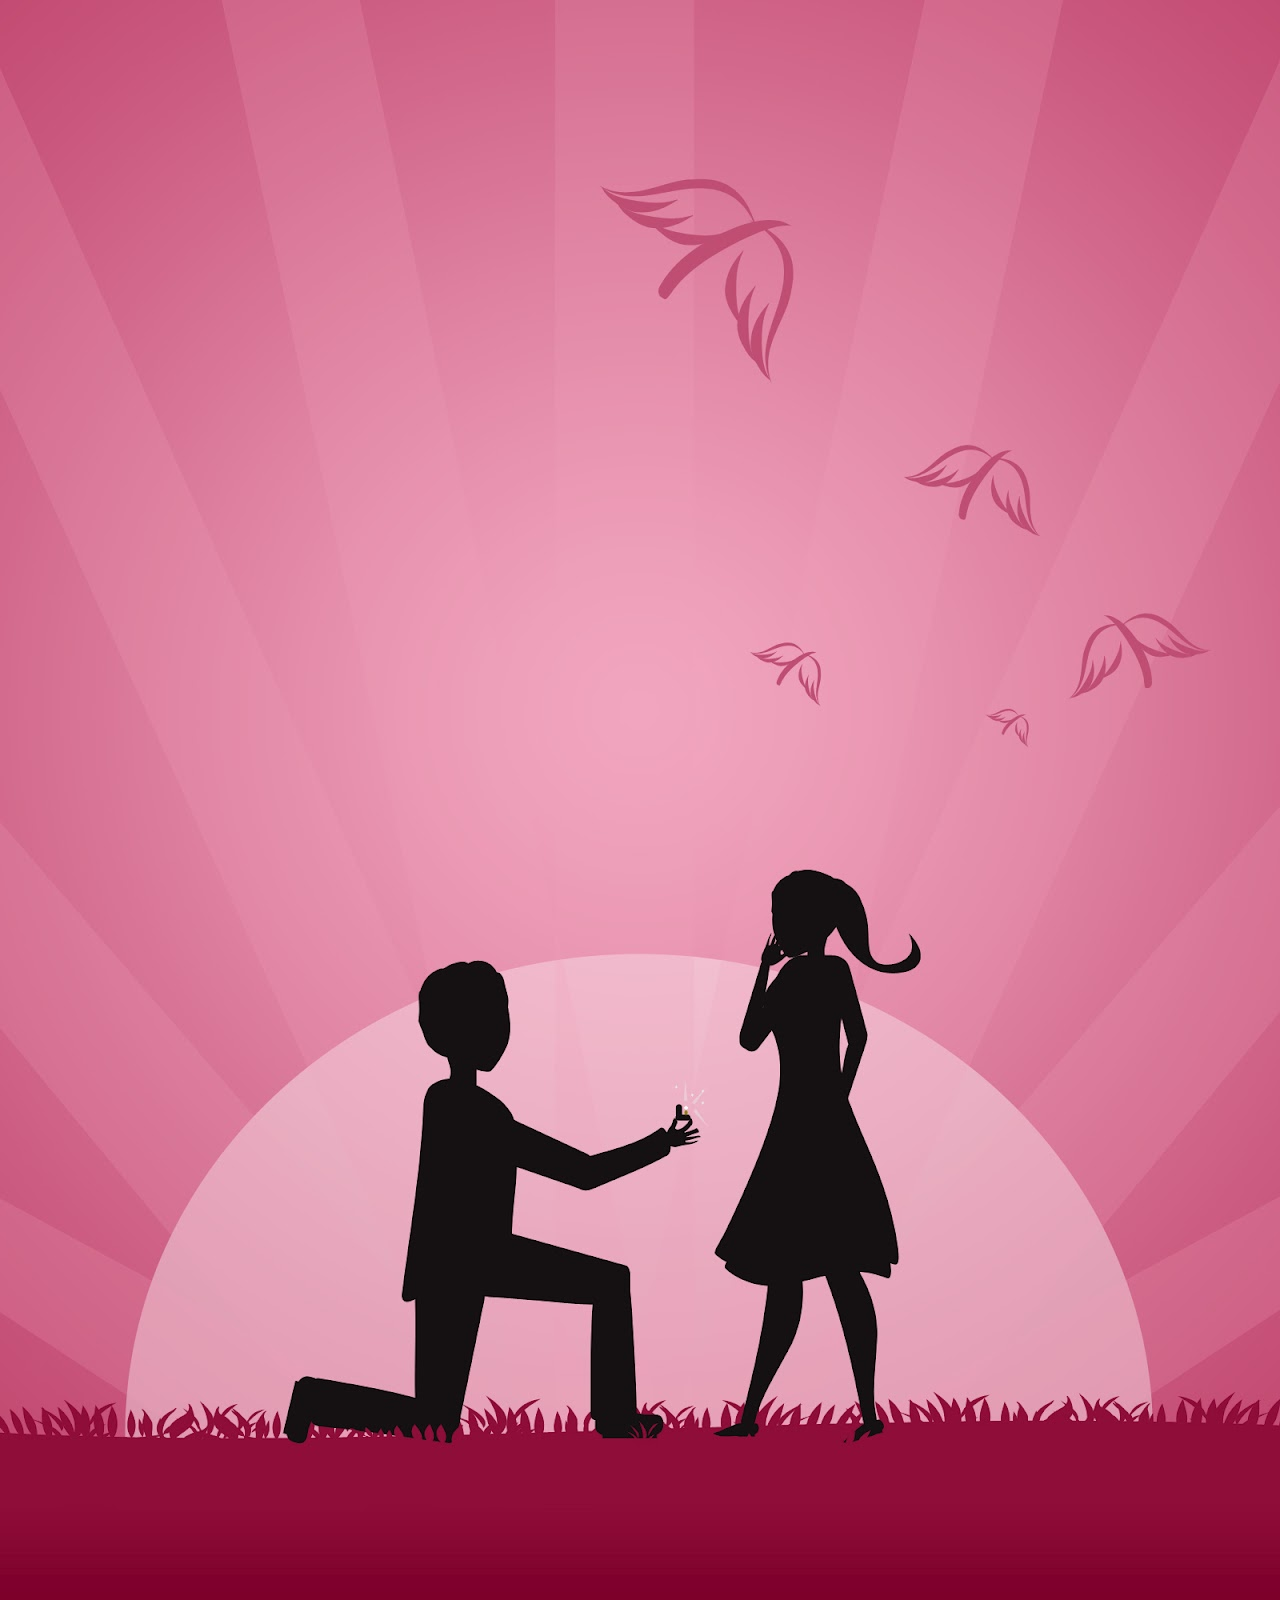 WallpaperfreekS: Happy Propose Day (8th February) Wallpapers